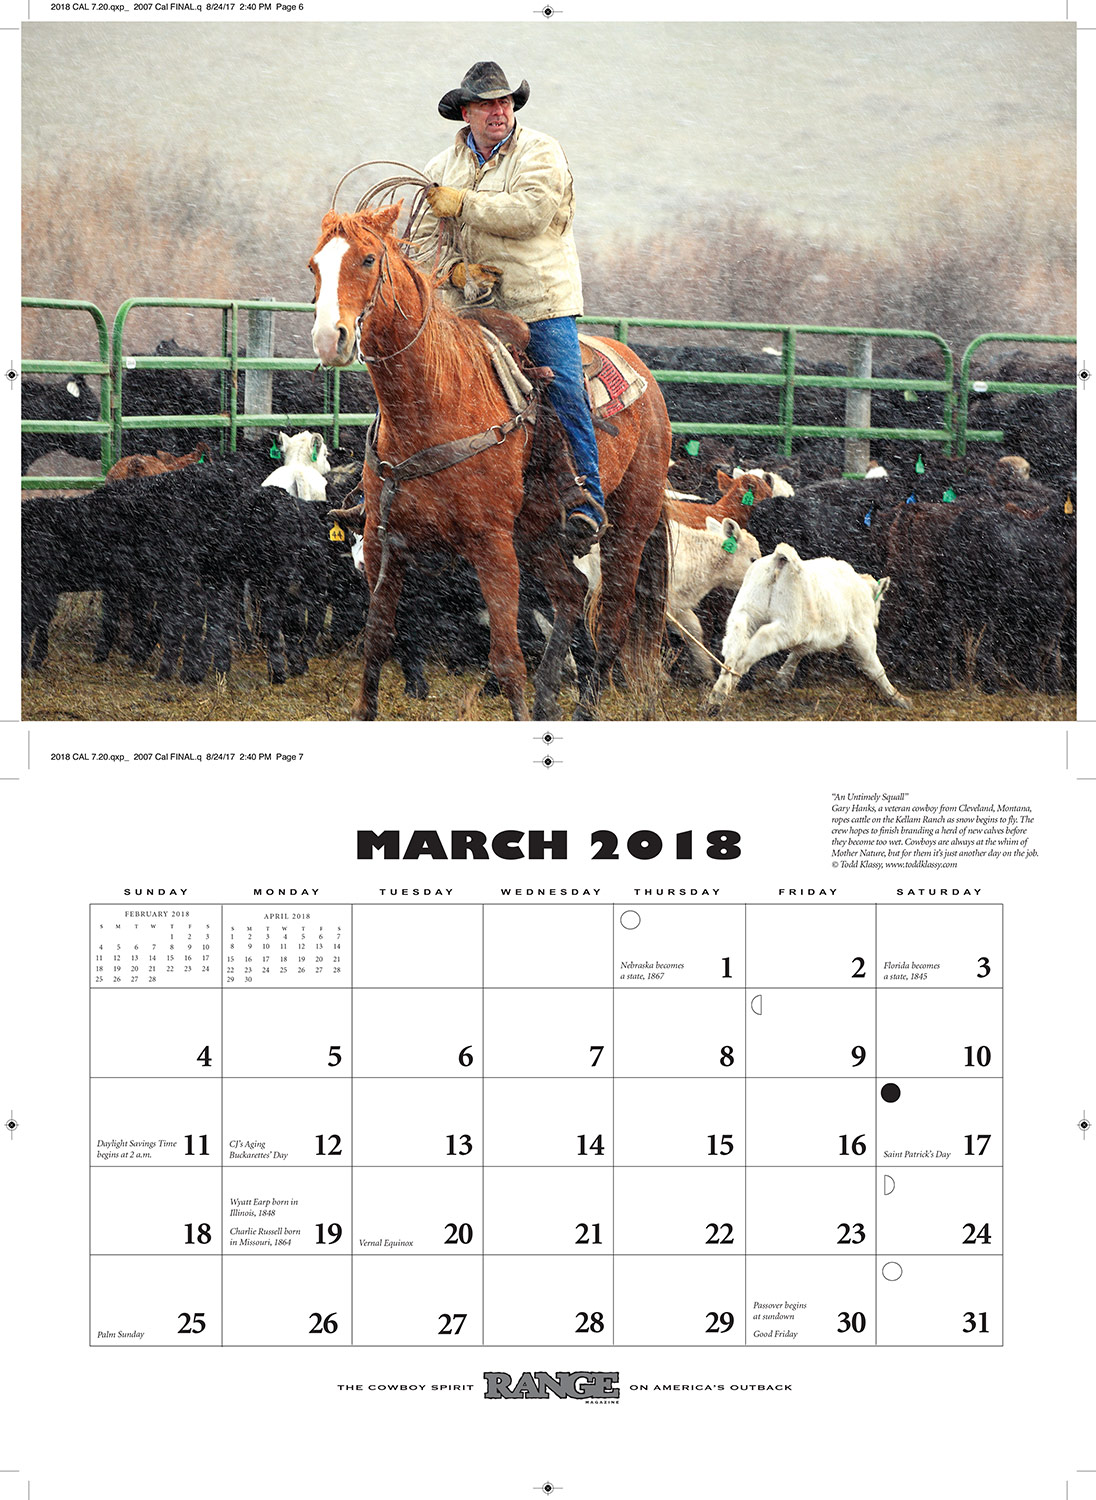 Range-Magazine-2018-Calendar-March-20170824-Small.jpg